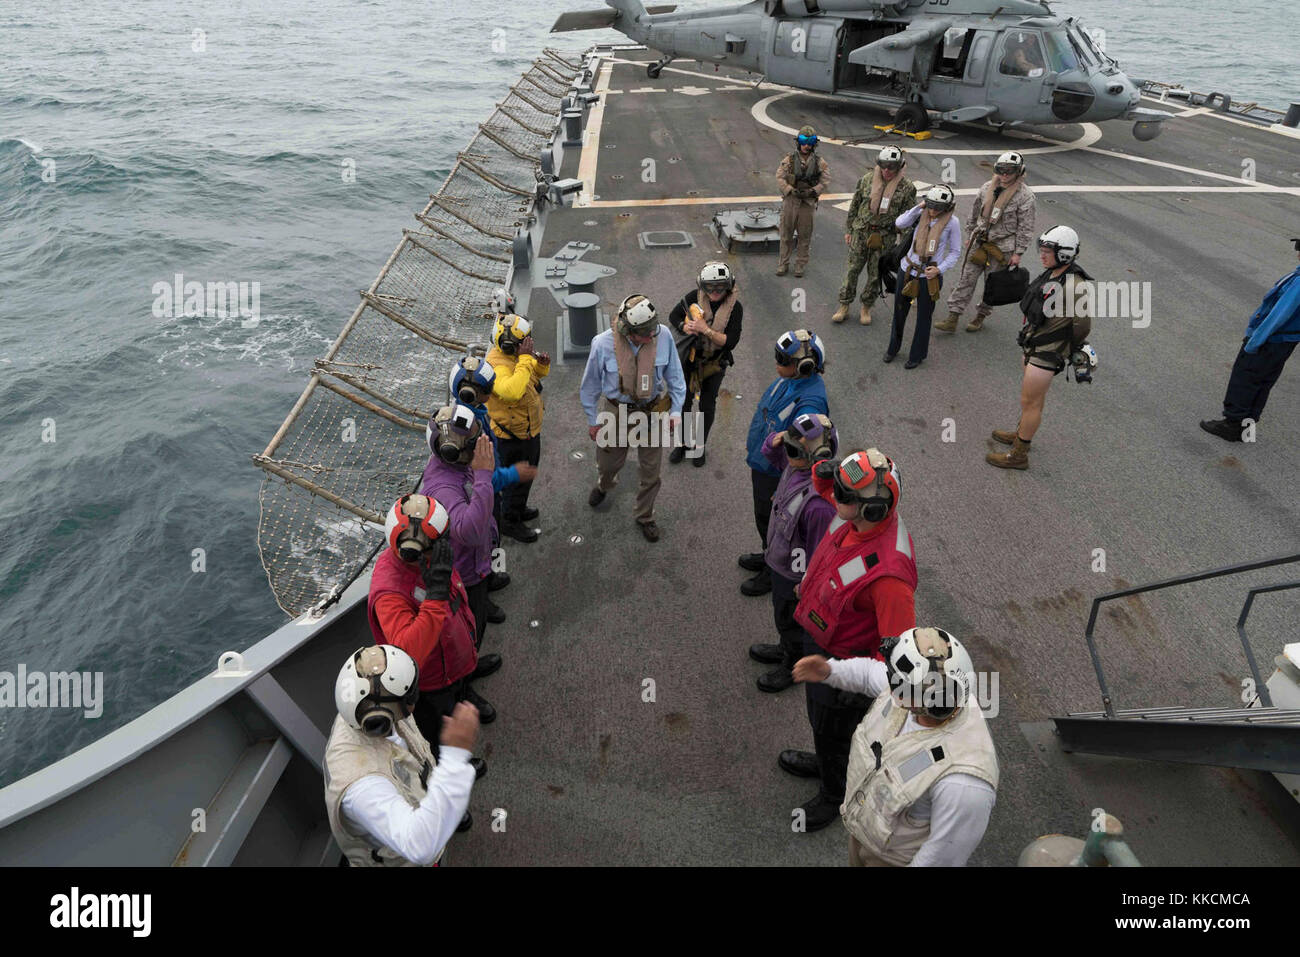 ARABIAN GULF (Nov. 23, 2017) Secretary of the Navy Richard V. Spencer is saluted by side boys upon his arrival to - Stock Image